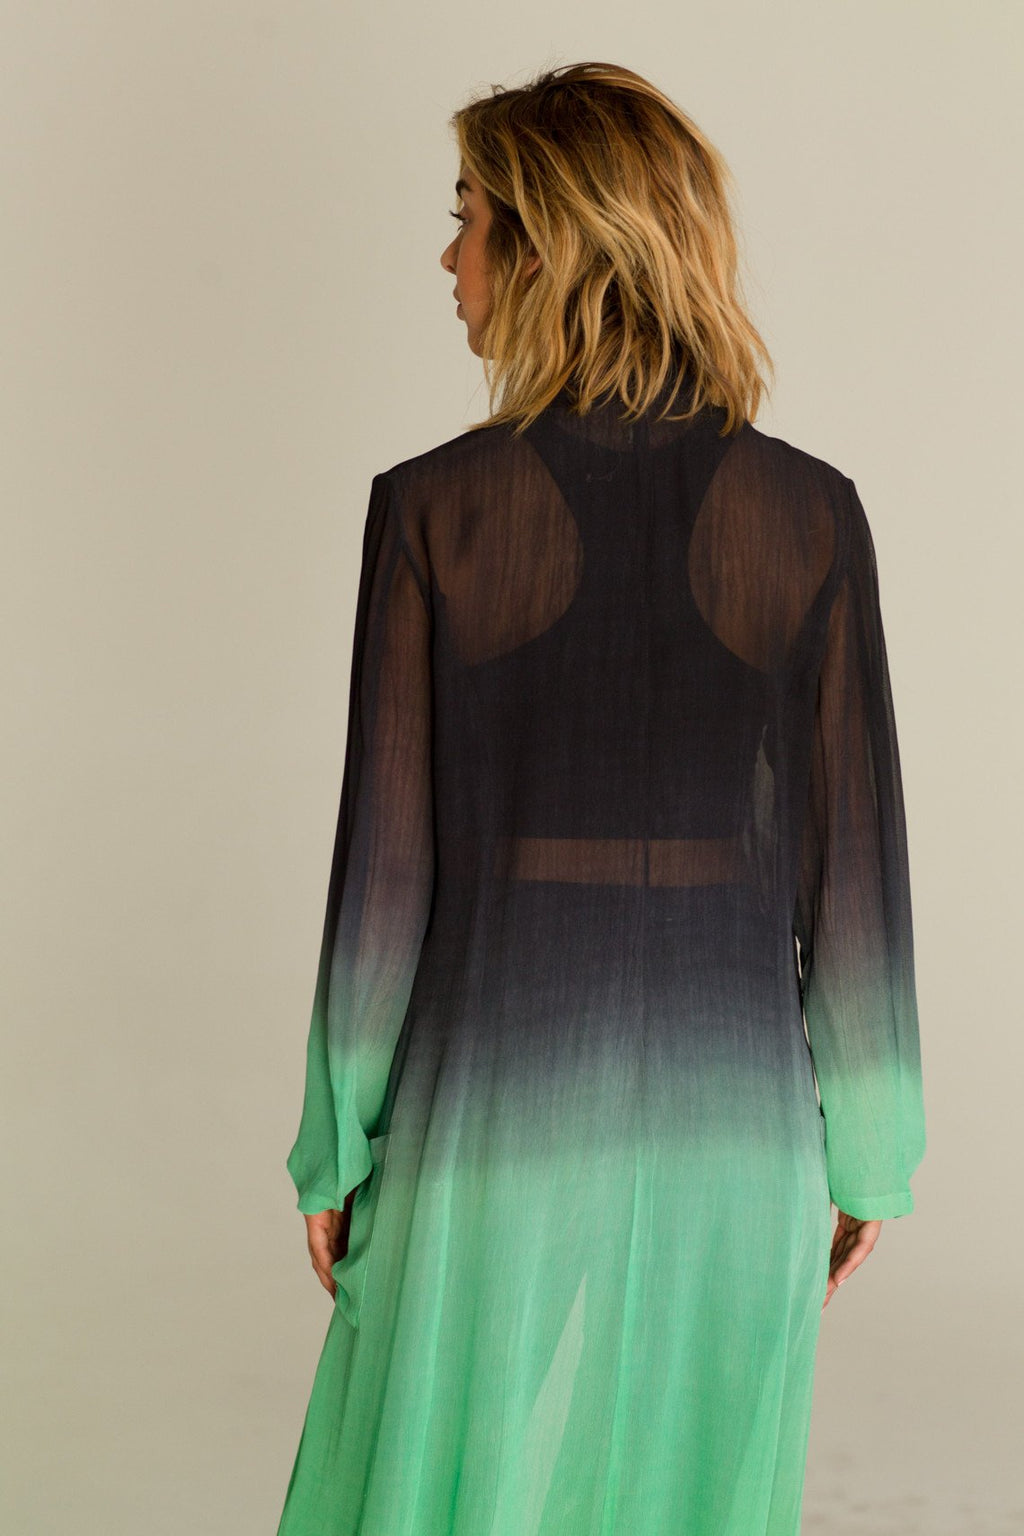 Rhythm And Blues Caftan - Madiani Boutique